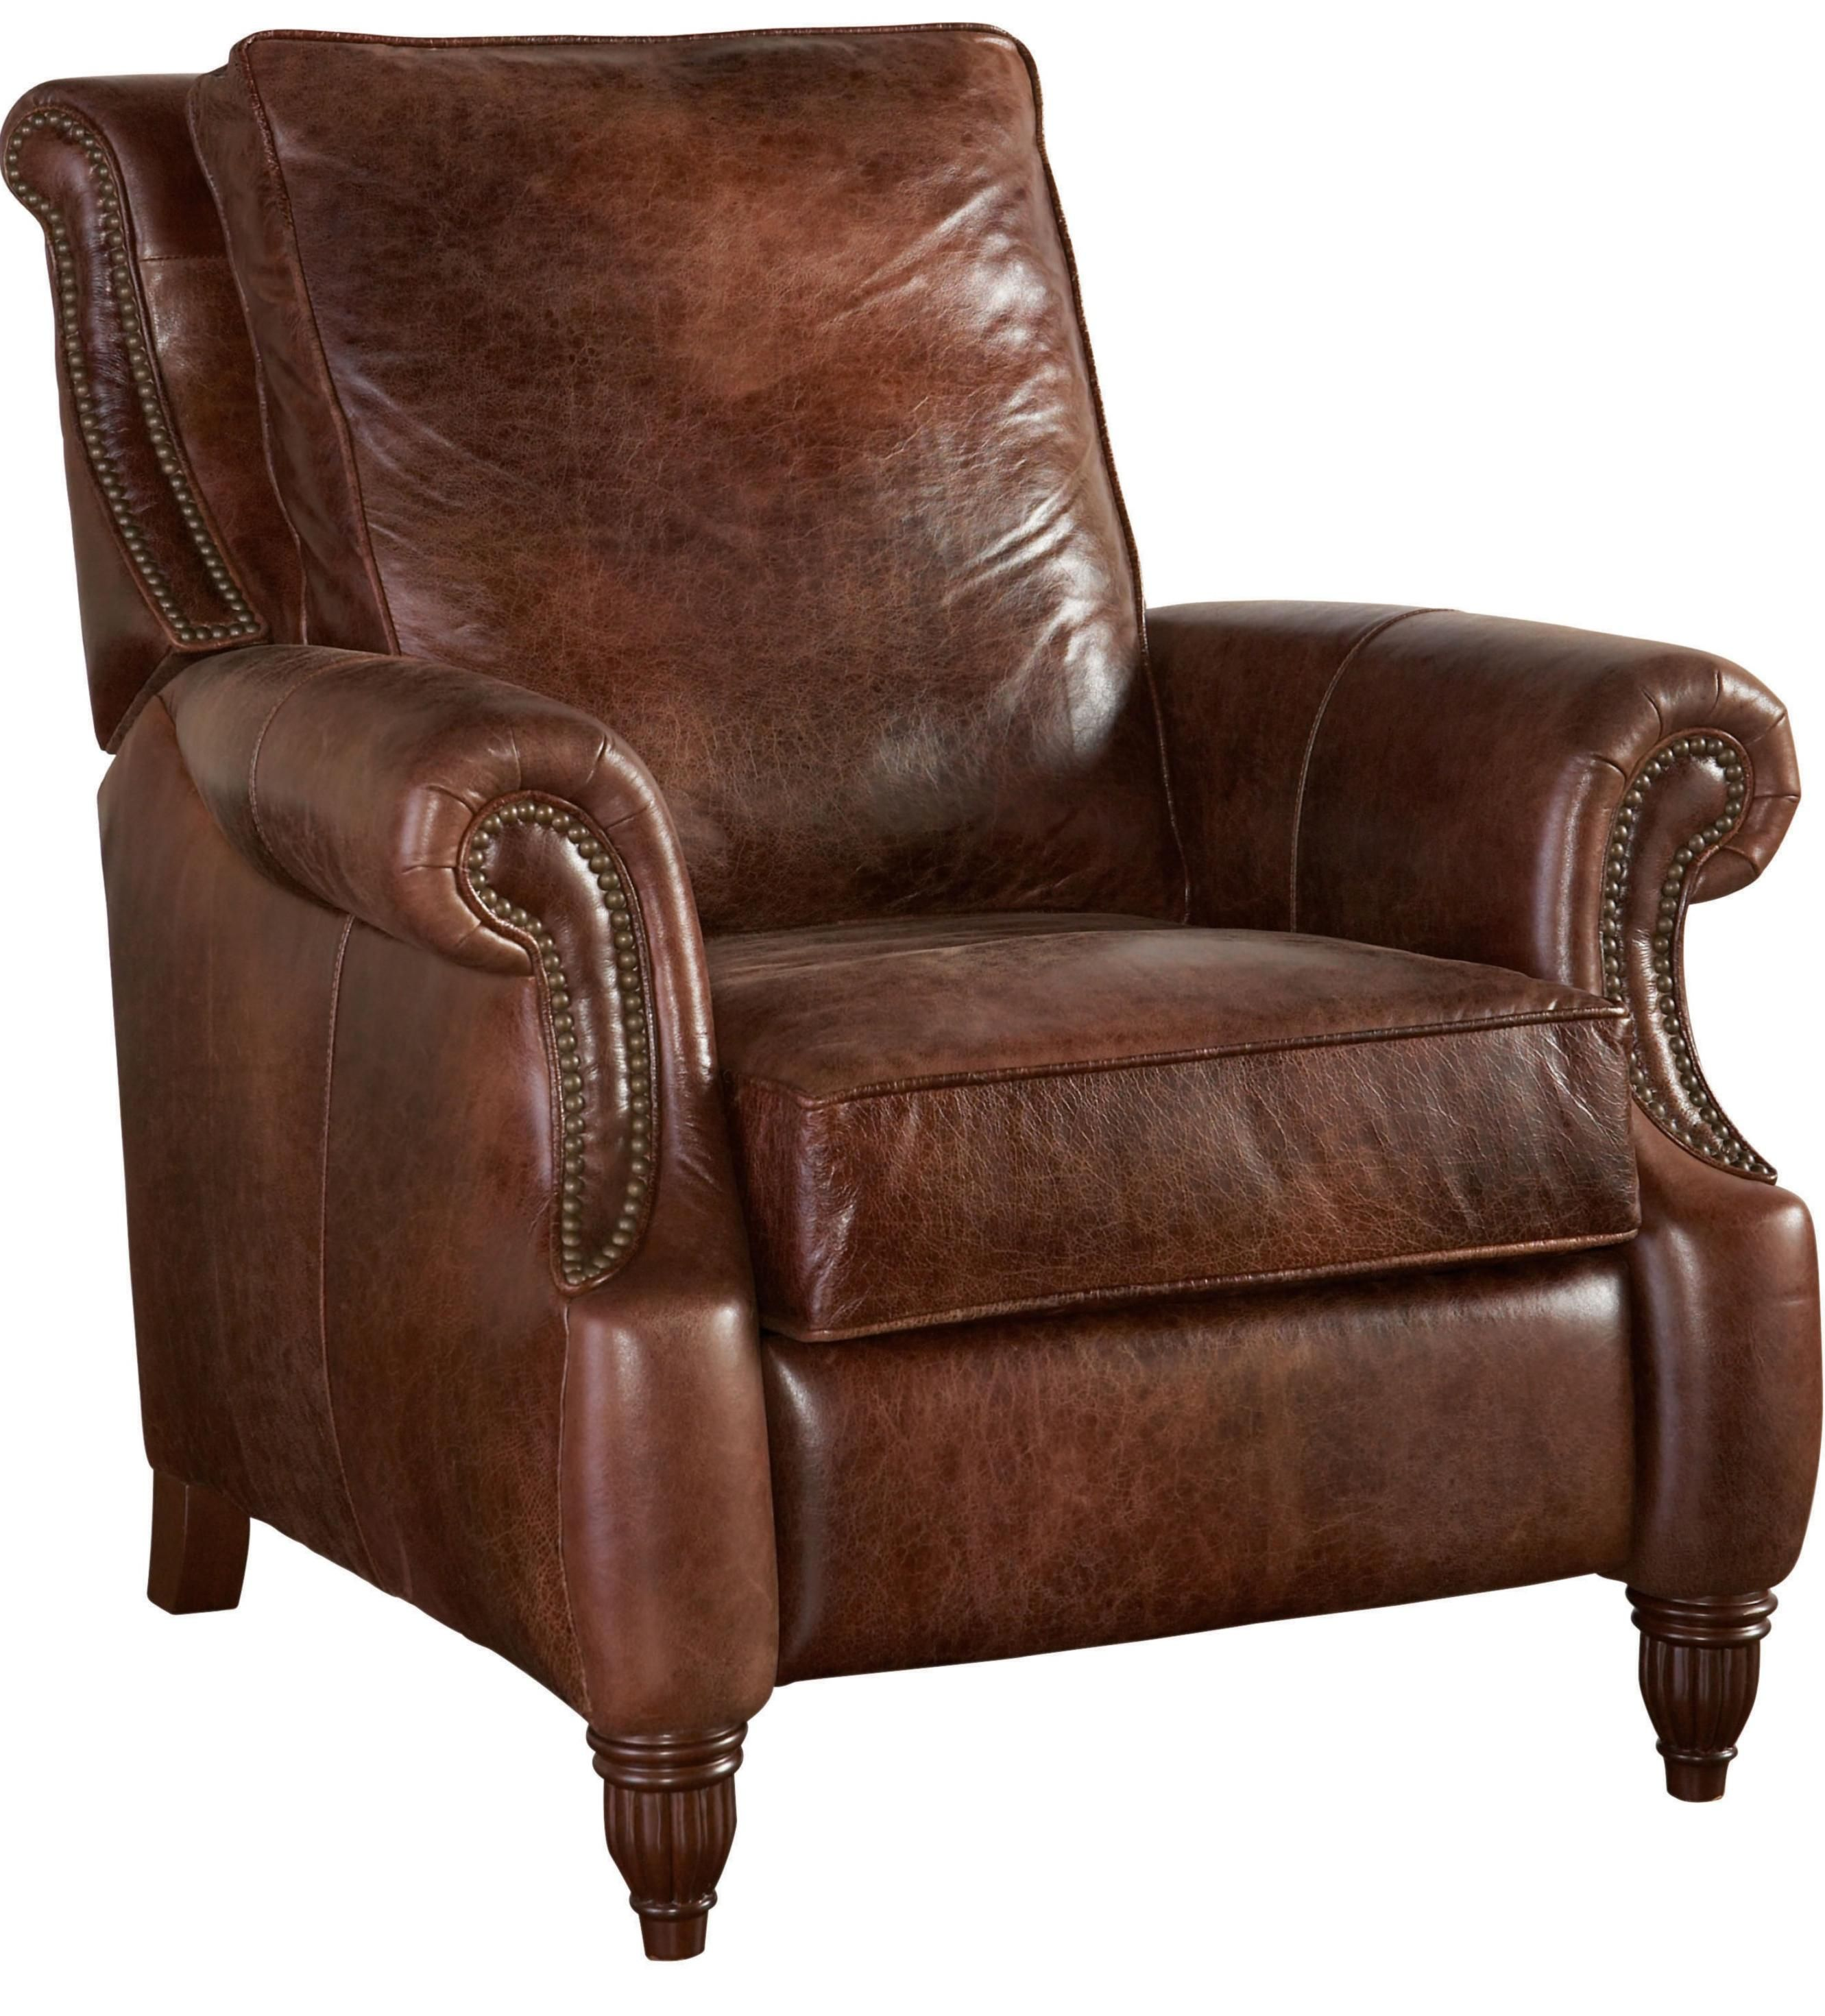 Drexel Heritage Upholstery Travis Recliner by Drexel Heritage®  sc 1 st  Pinterest & Drexel Heritage Upholstery Travis Recliner by Drexel Heritage ... islam-shia.org